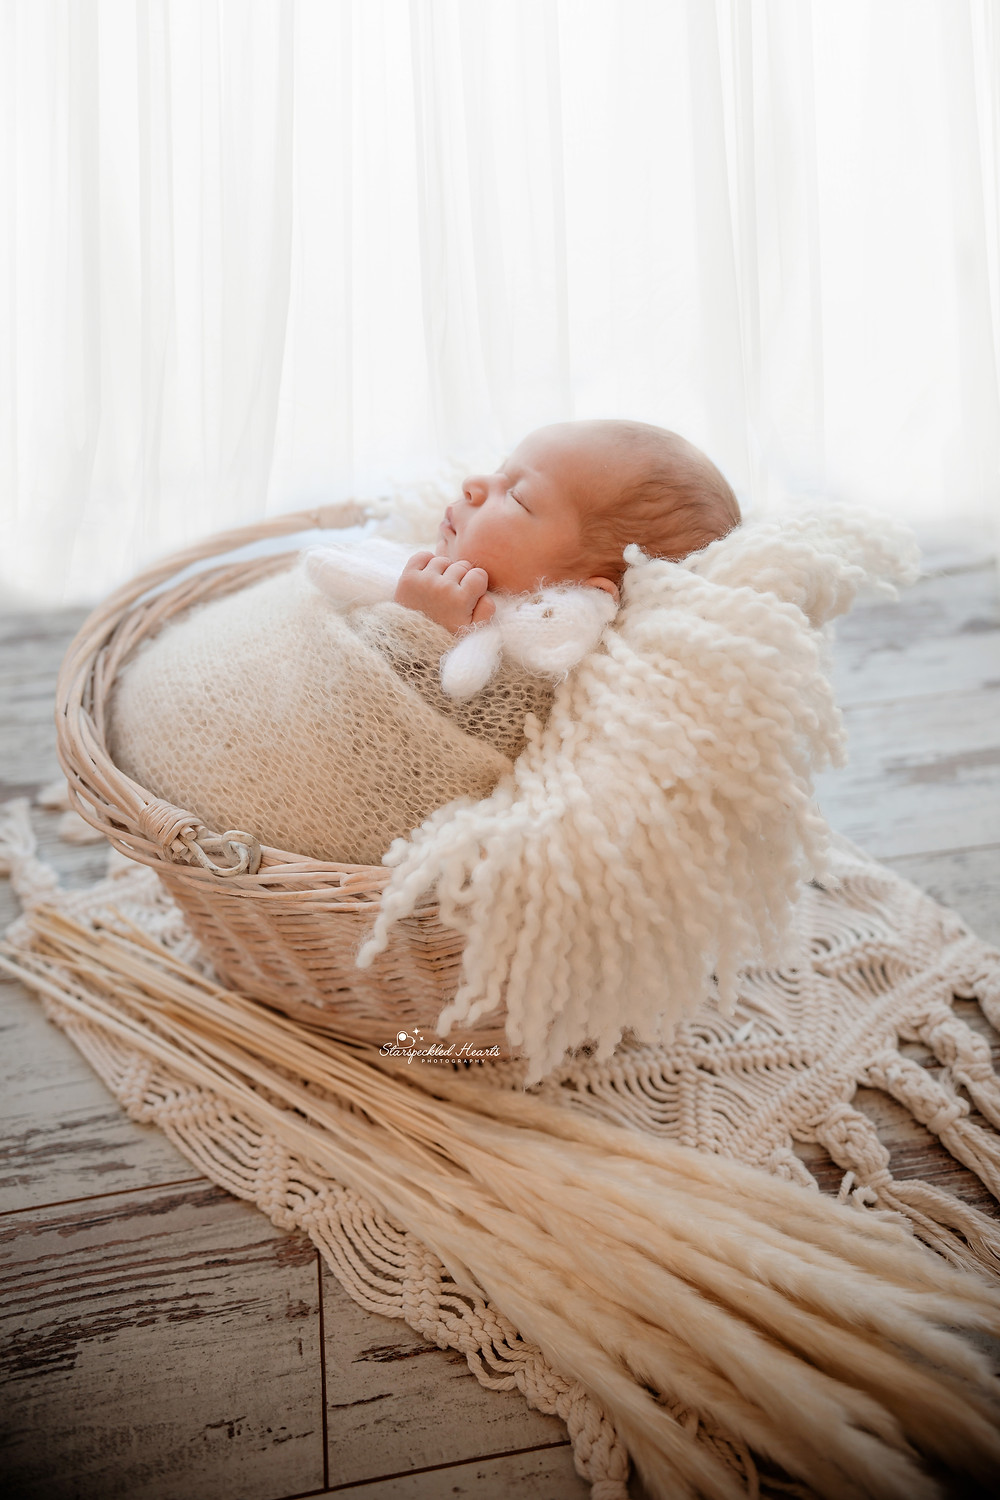 baby boy lying in a white wicker basket surrounded by pampas